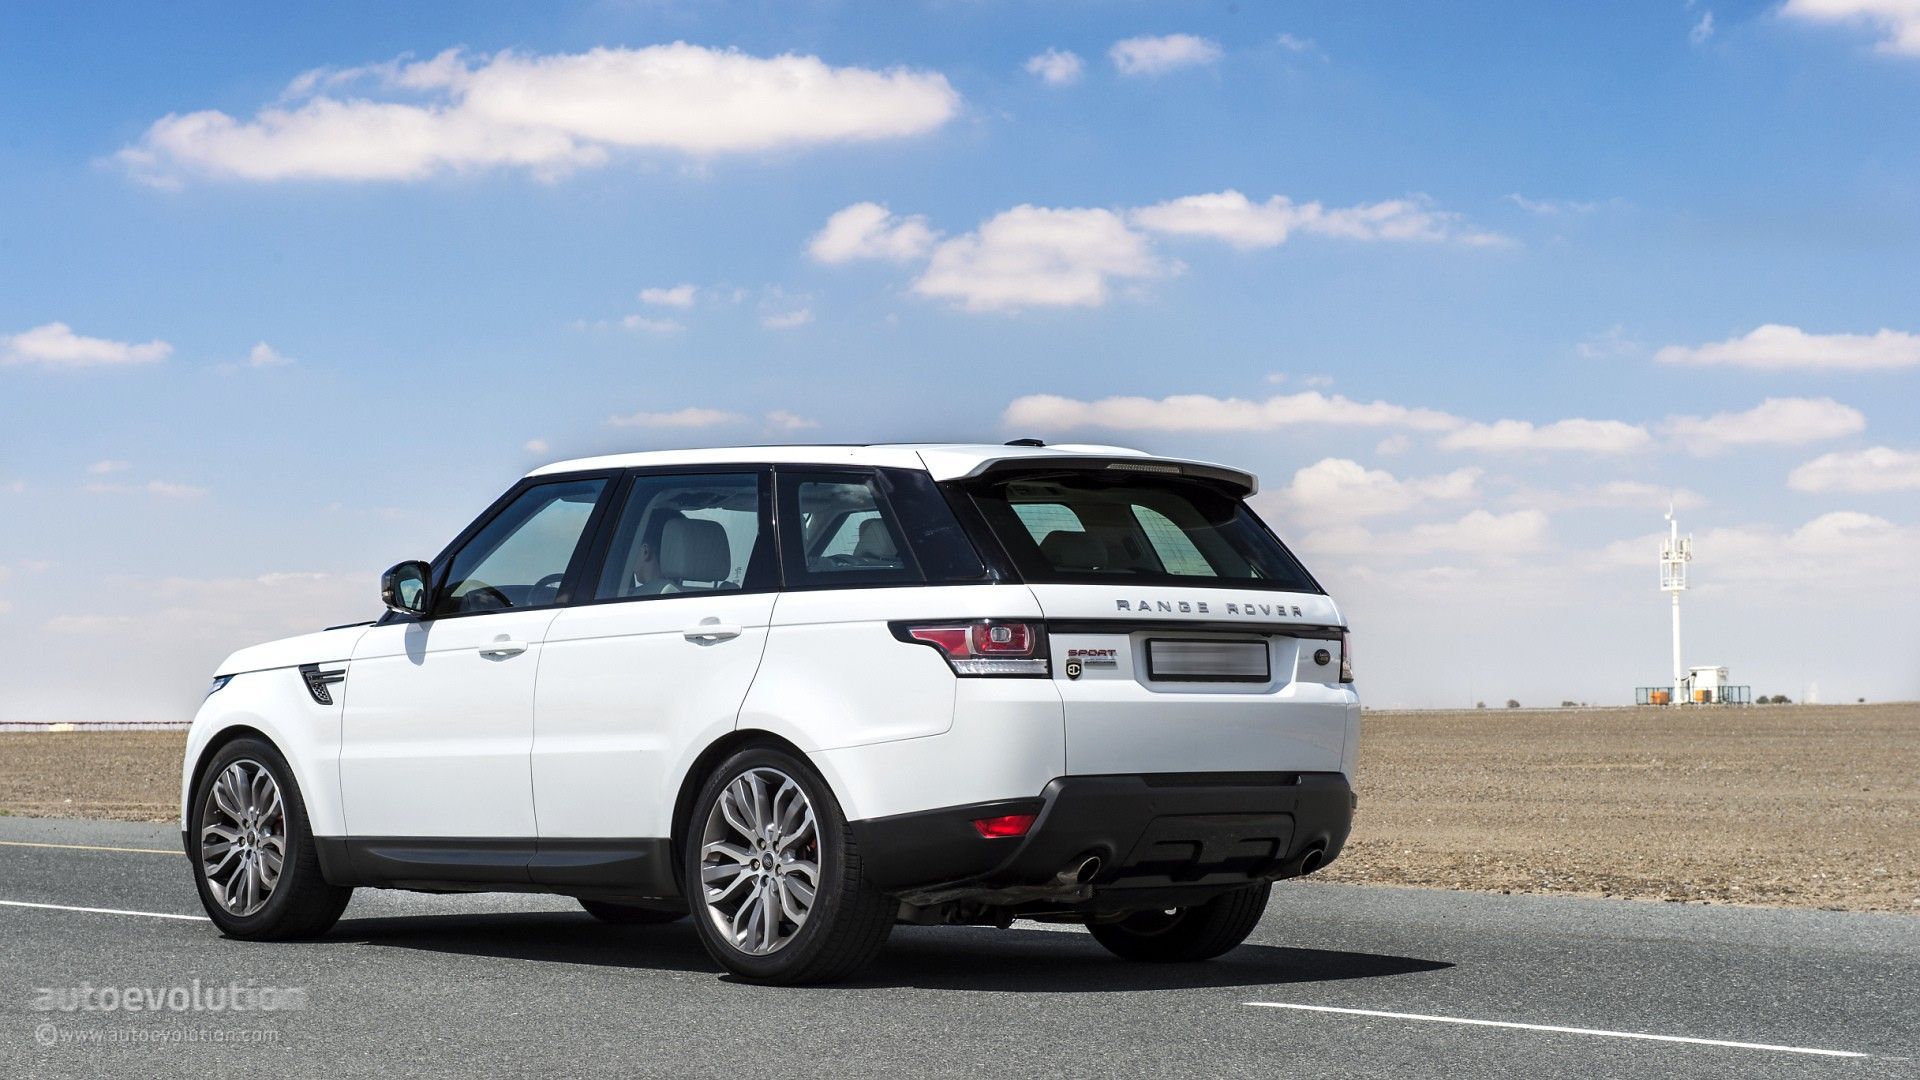 2015 range rover sport supercharged review http www autoevolution com